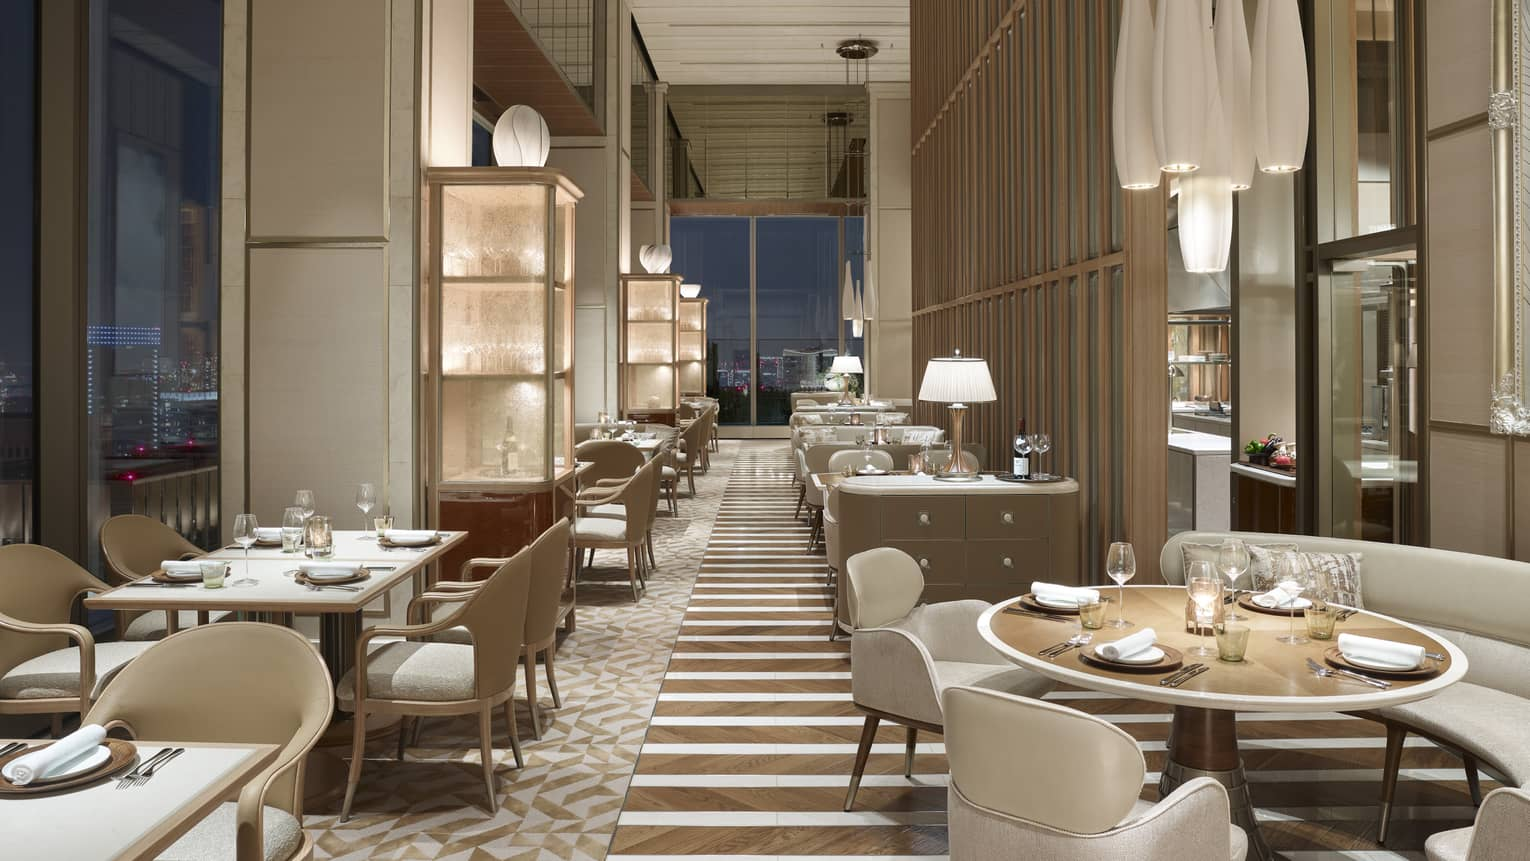 Restaurant with off-white chairs and sofas, elegant chandeliers, windows with nighttime views